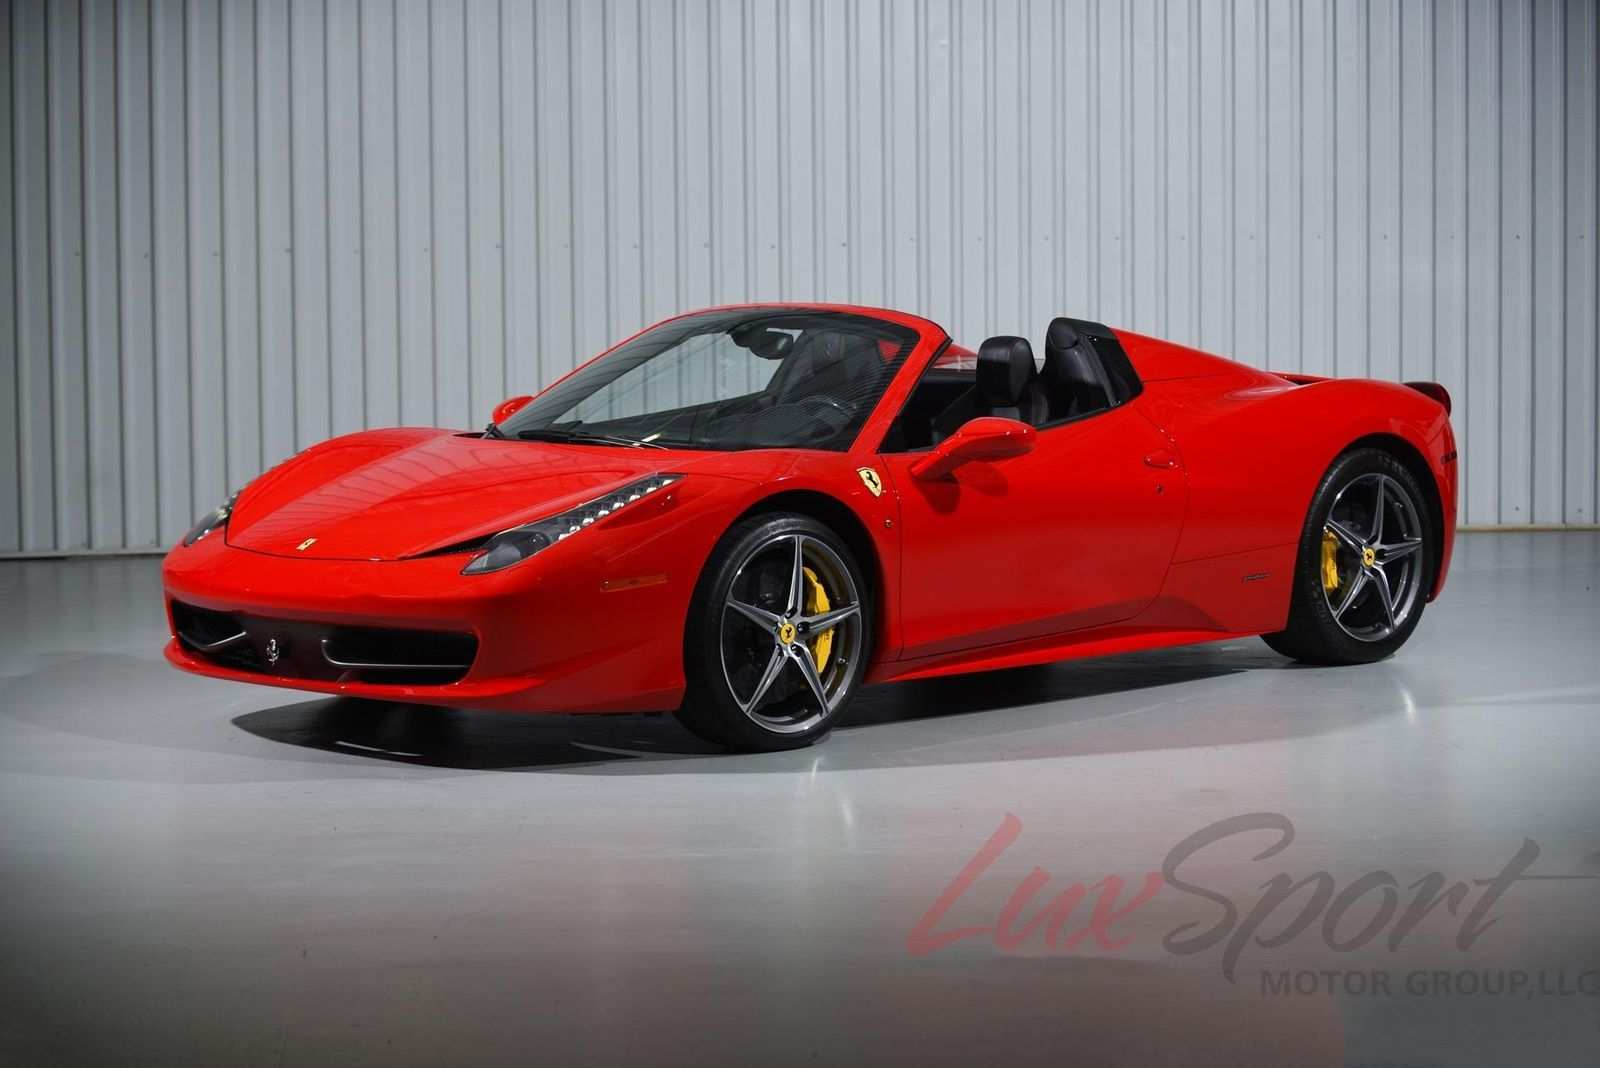 96 All New 2019 Ferrari 458 Spider Wallpaper